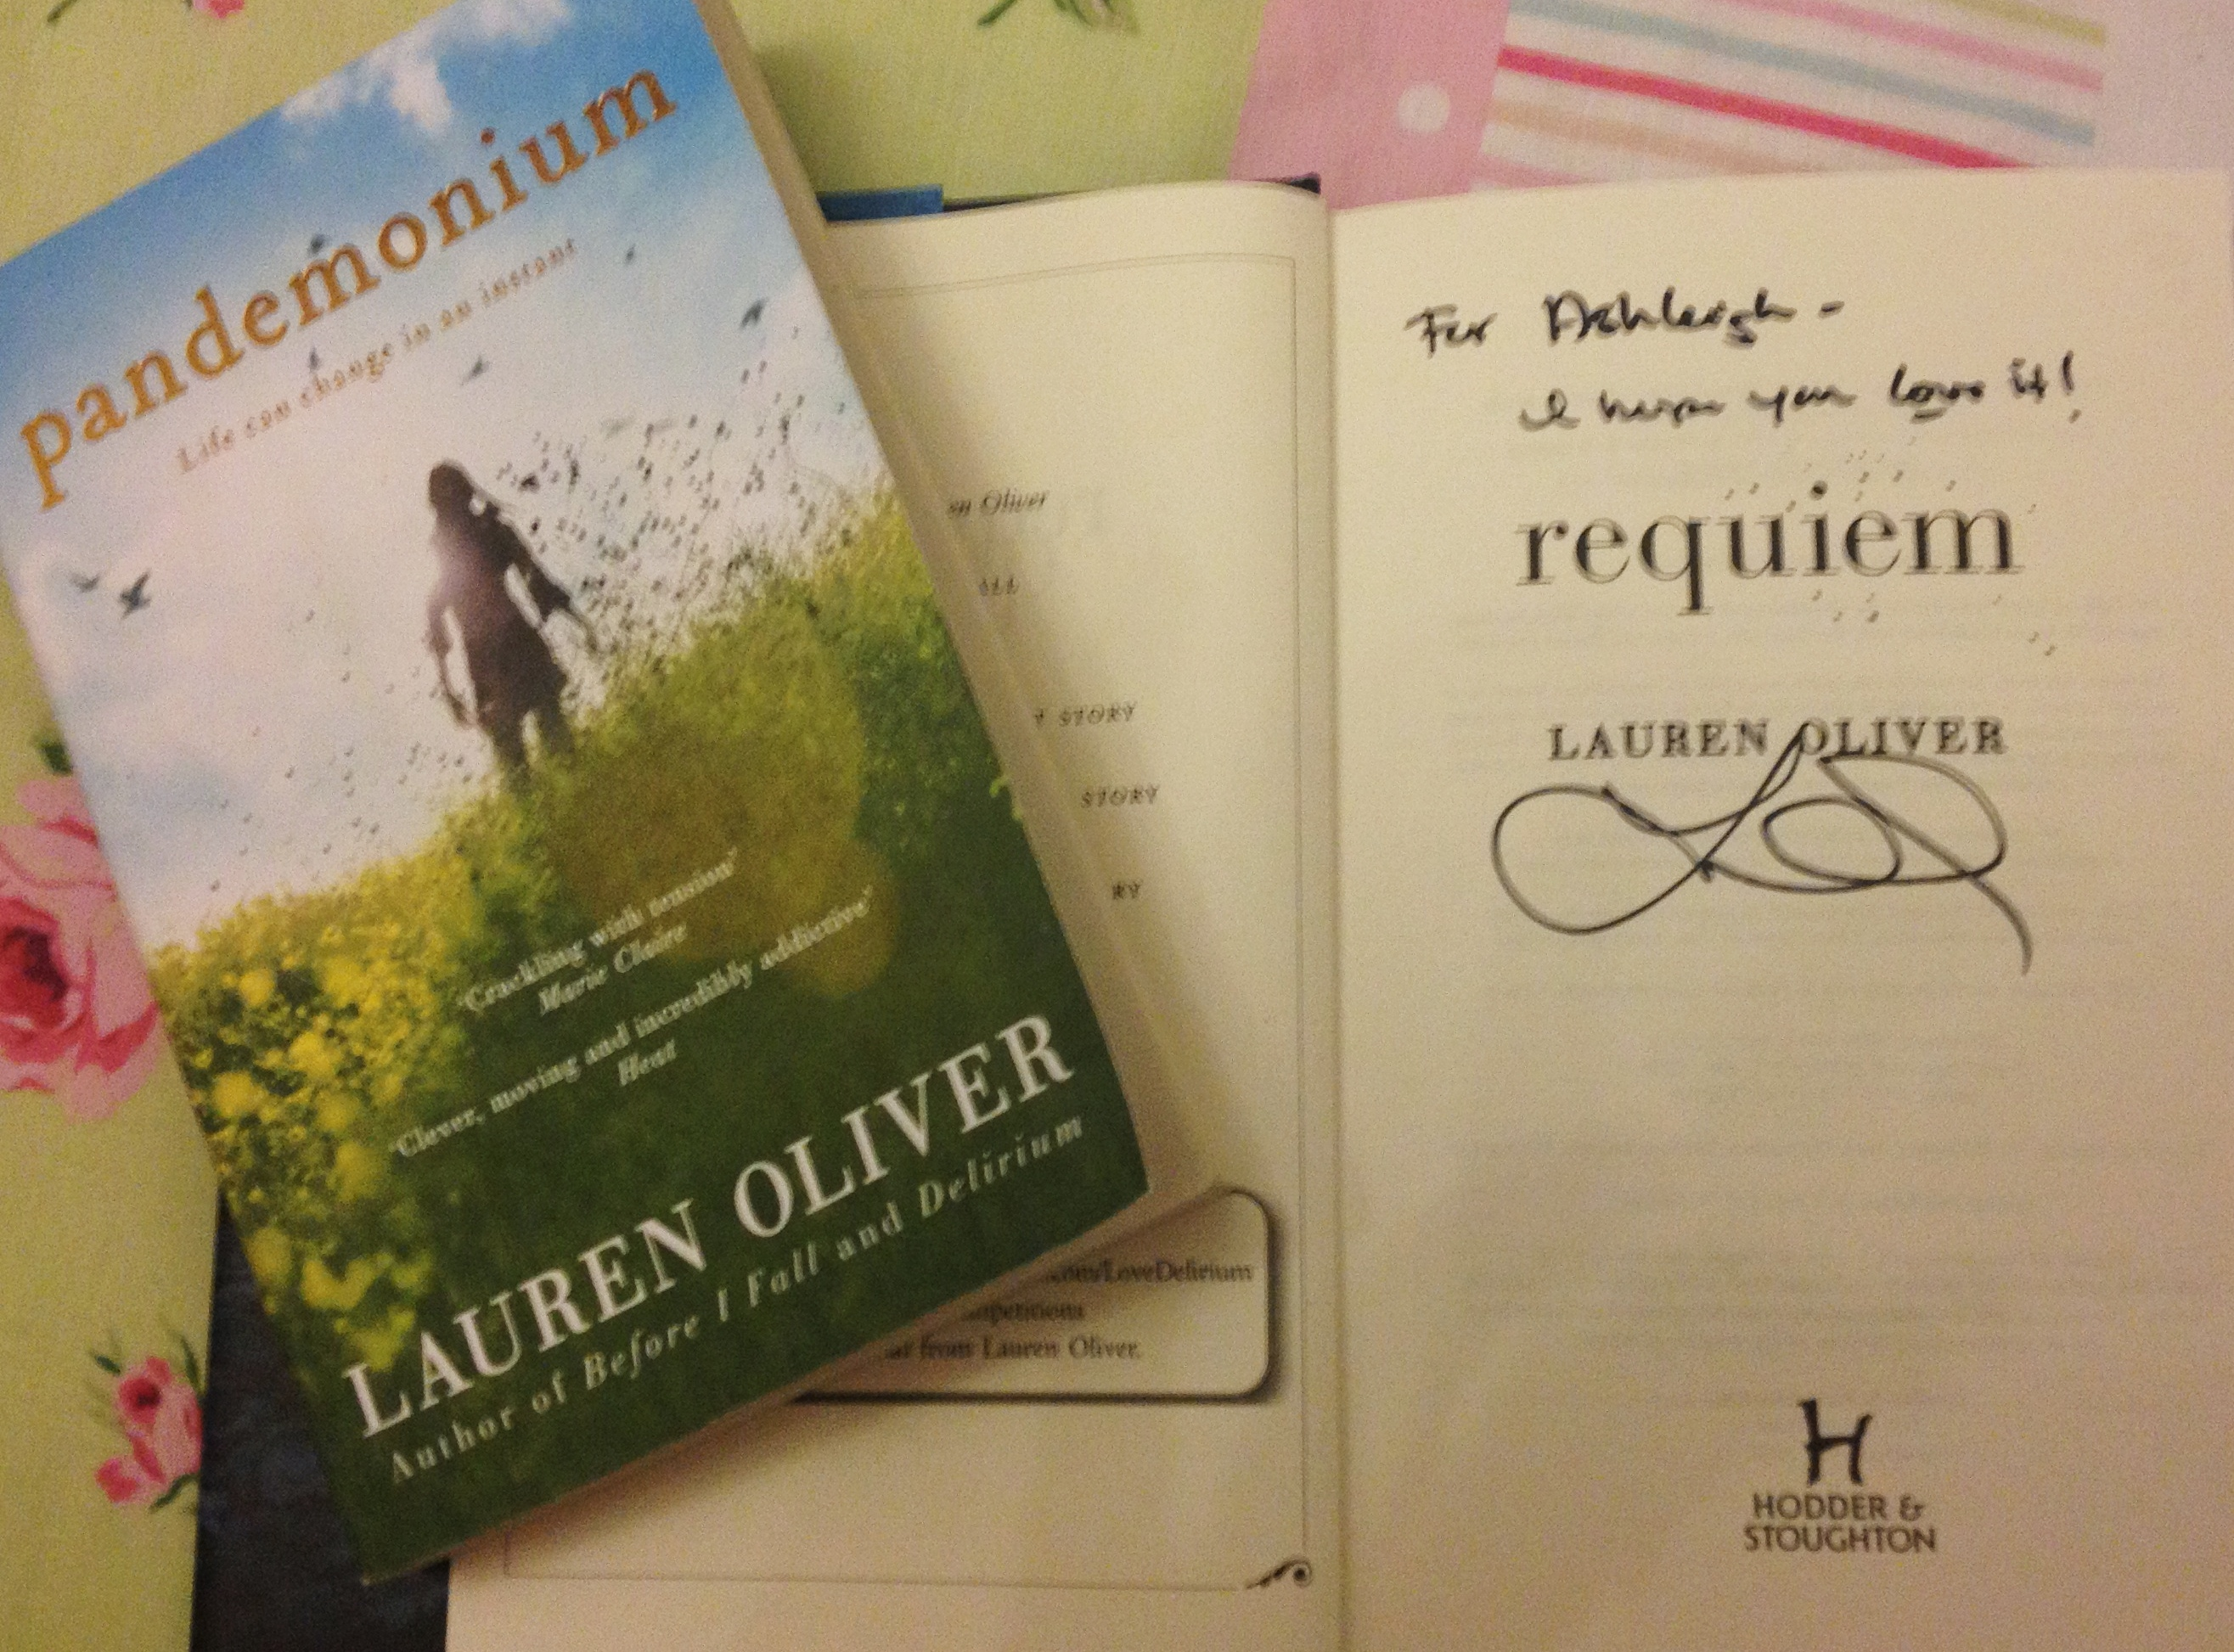 Lauren Oliver signed books